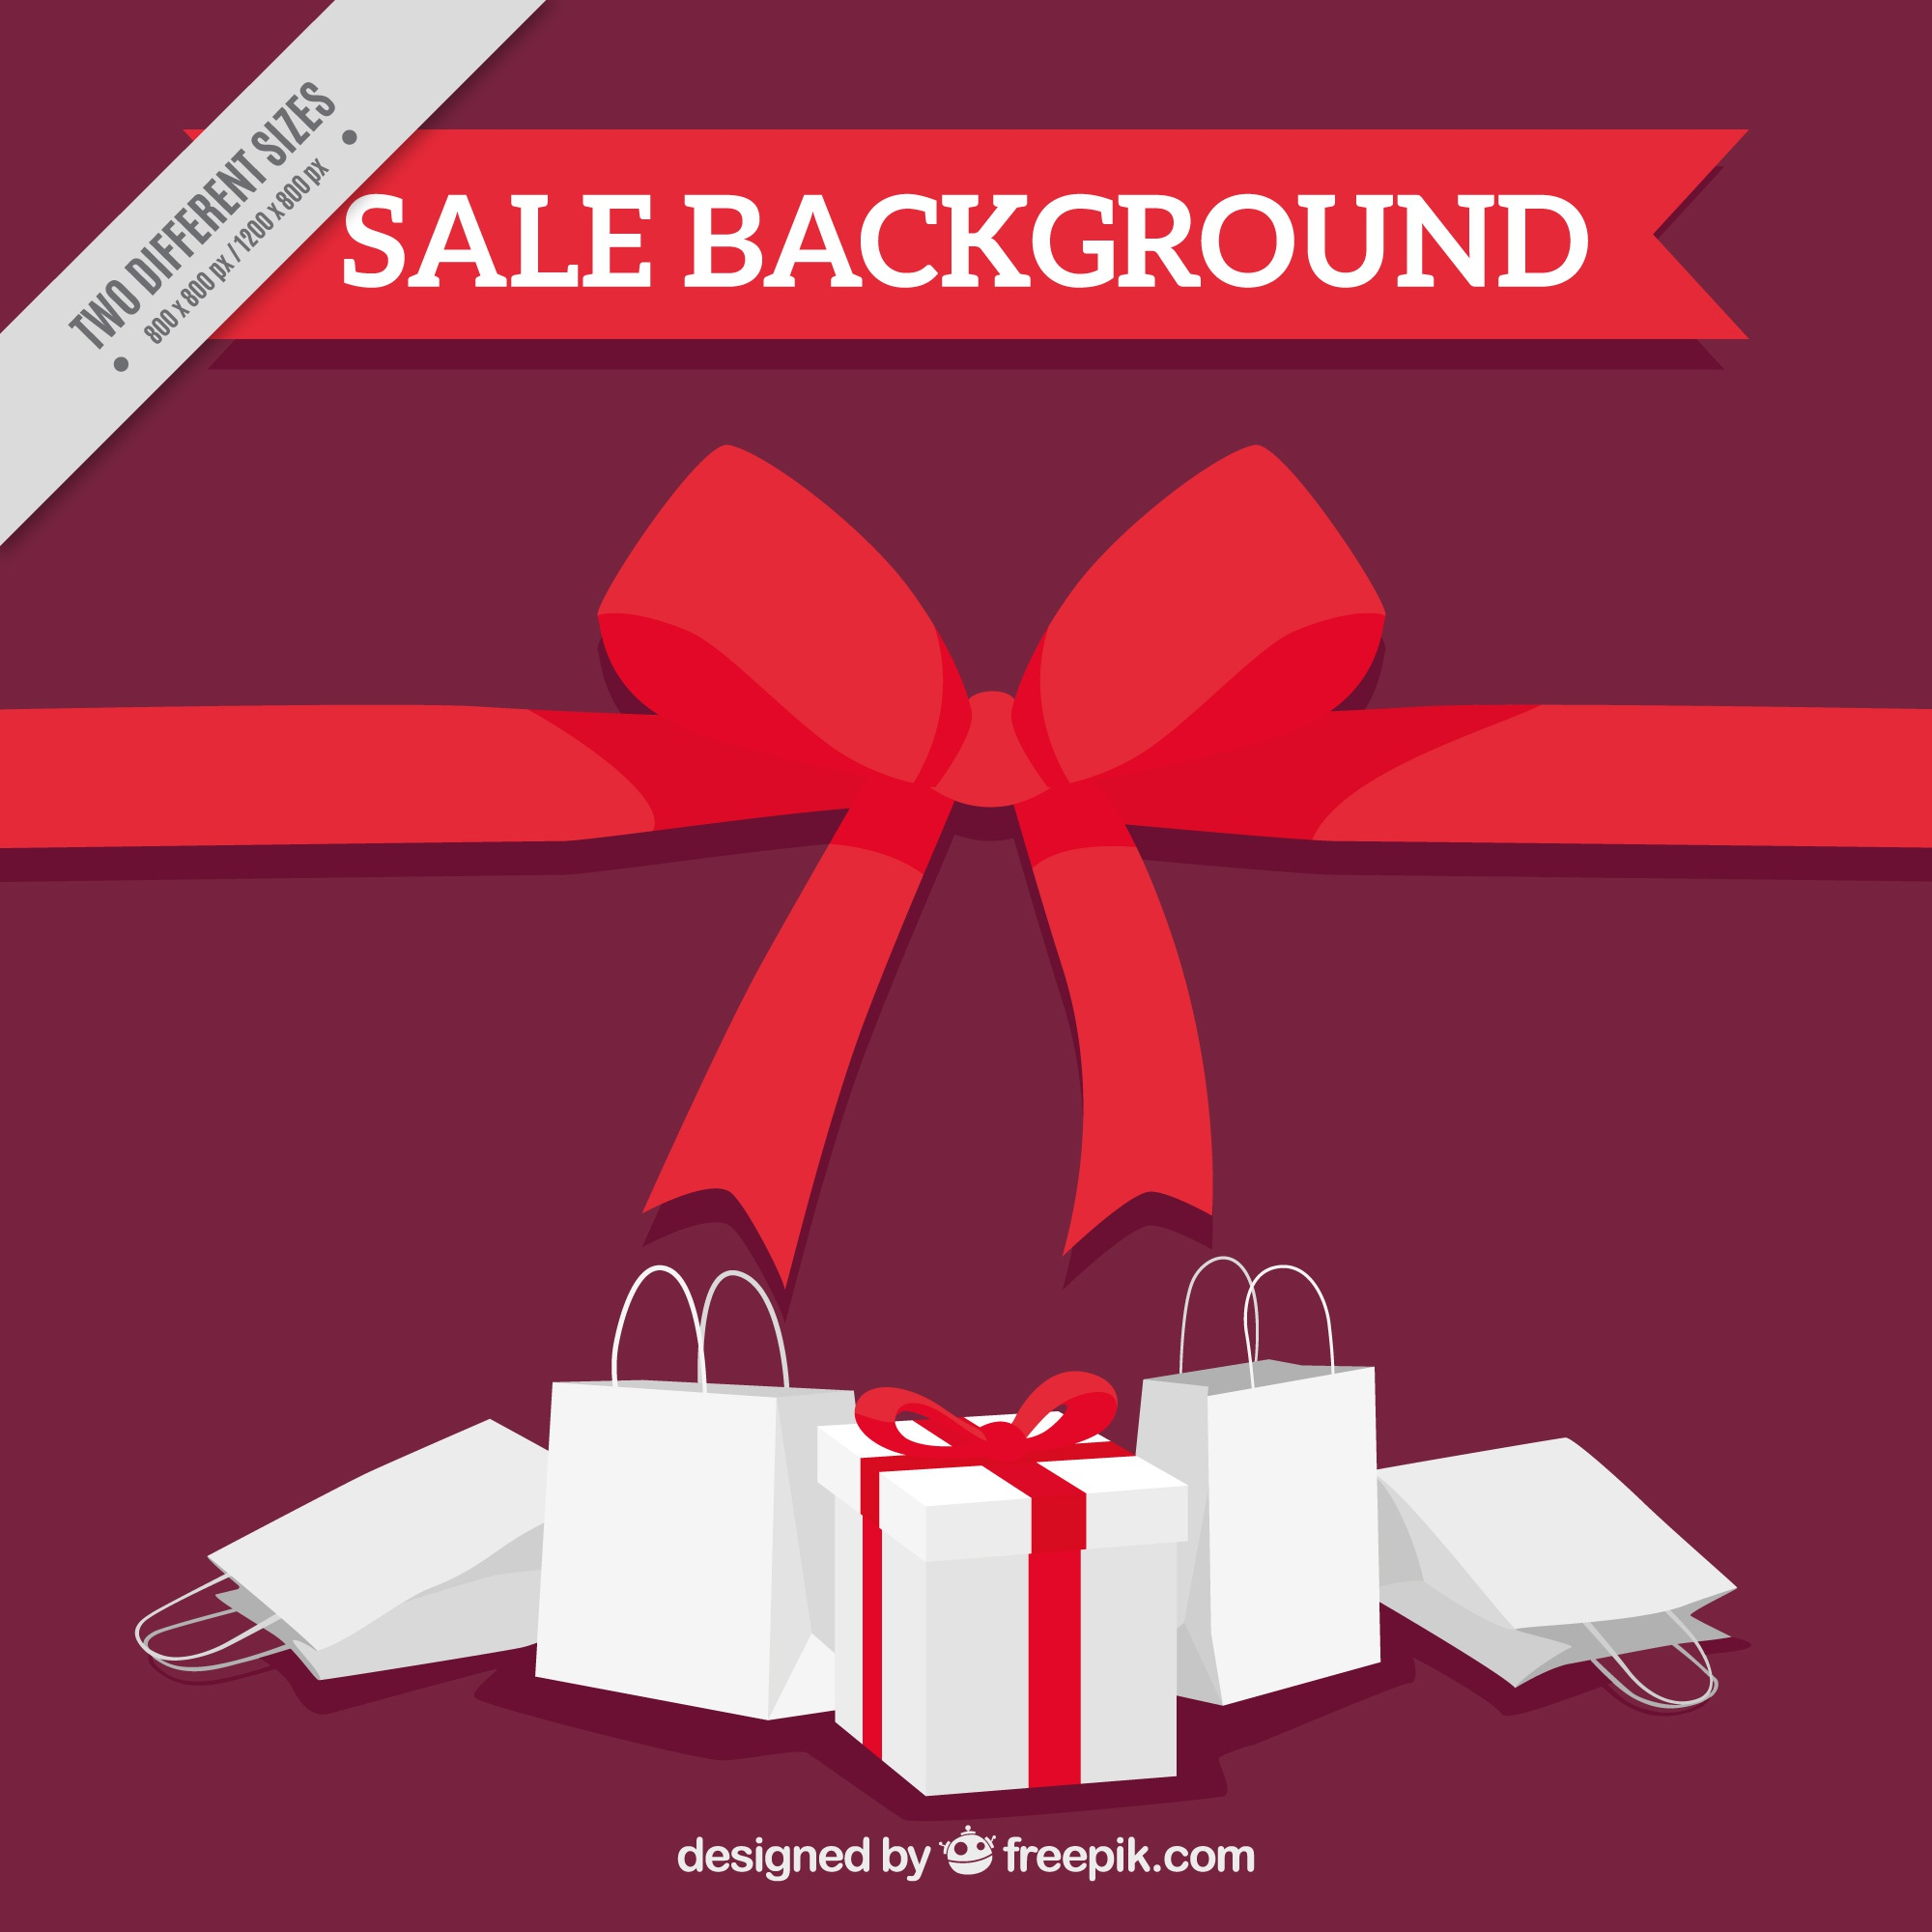 Sale background with red ribbons and white bags